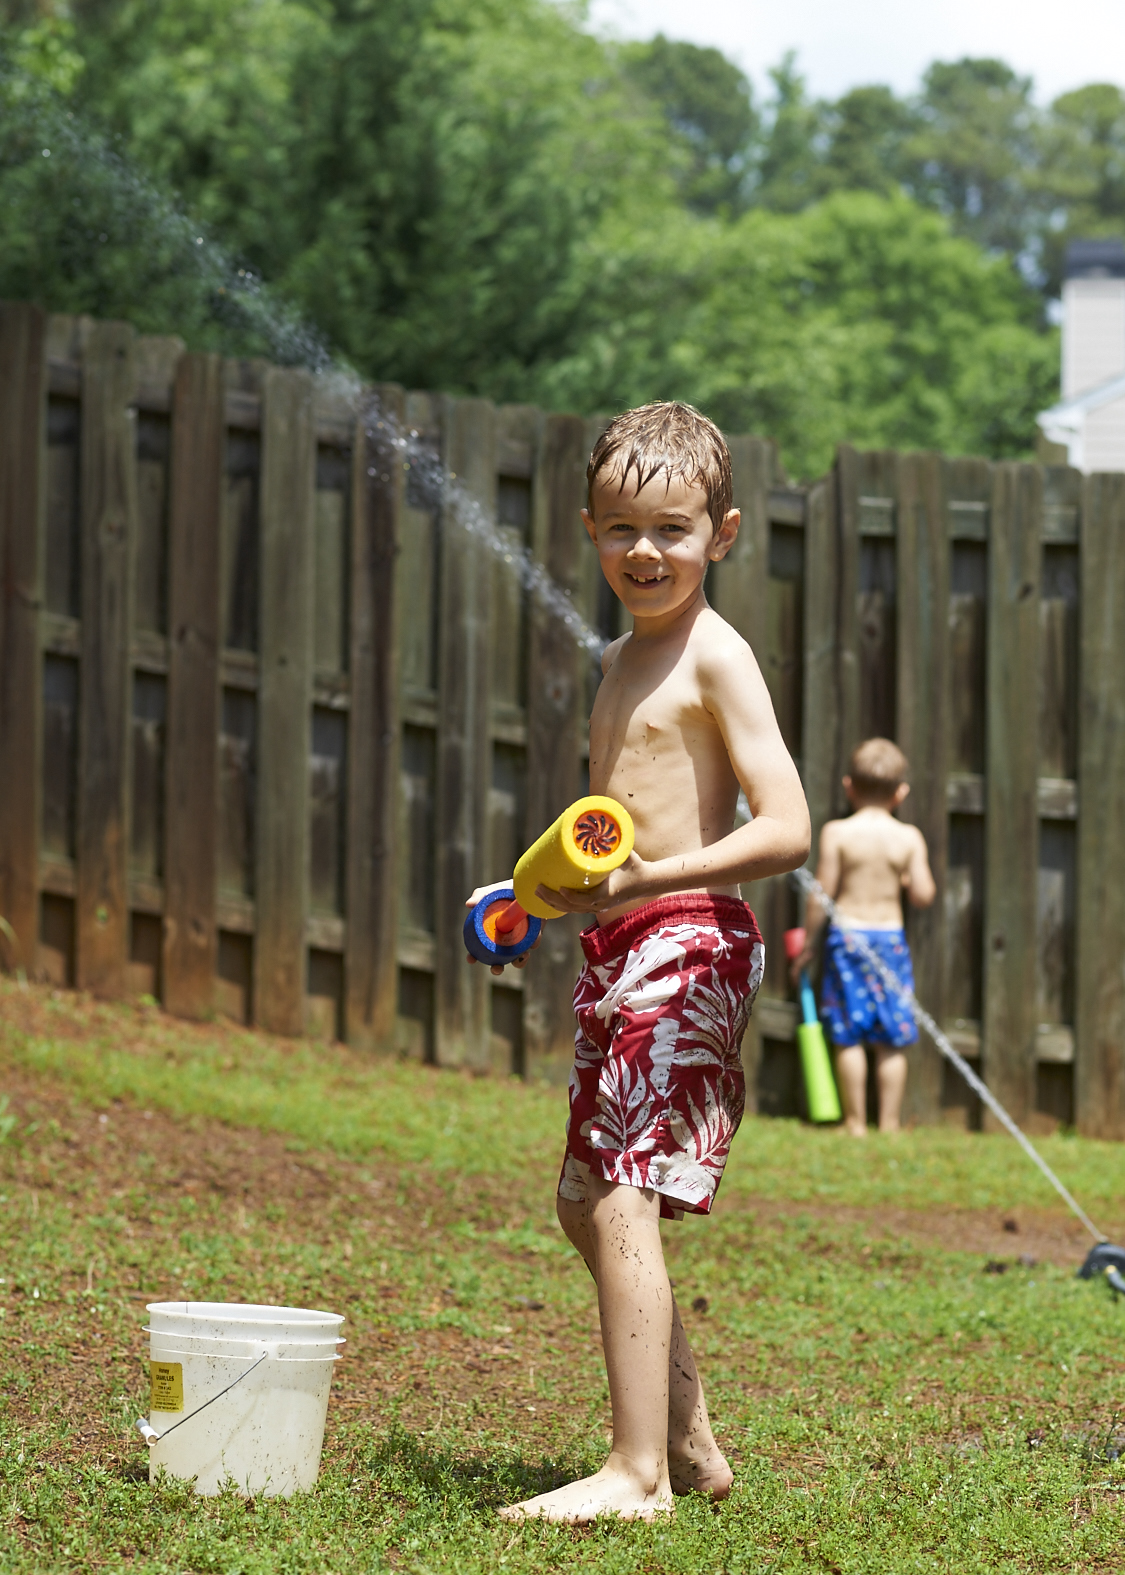 sprinkler, boy, childhood, photography